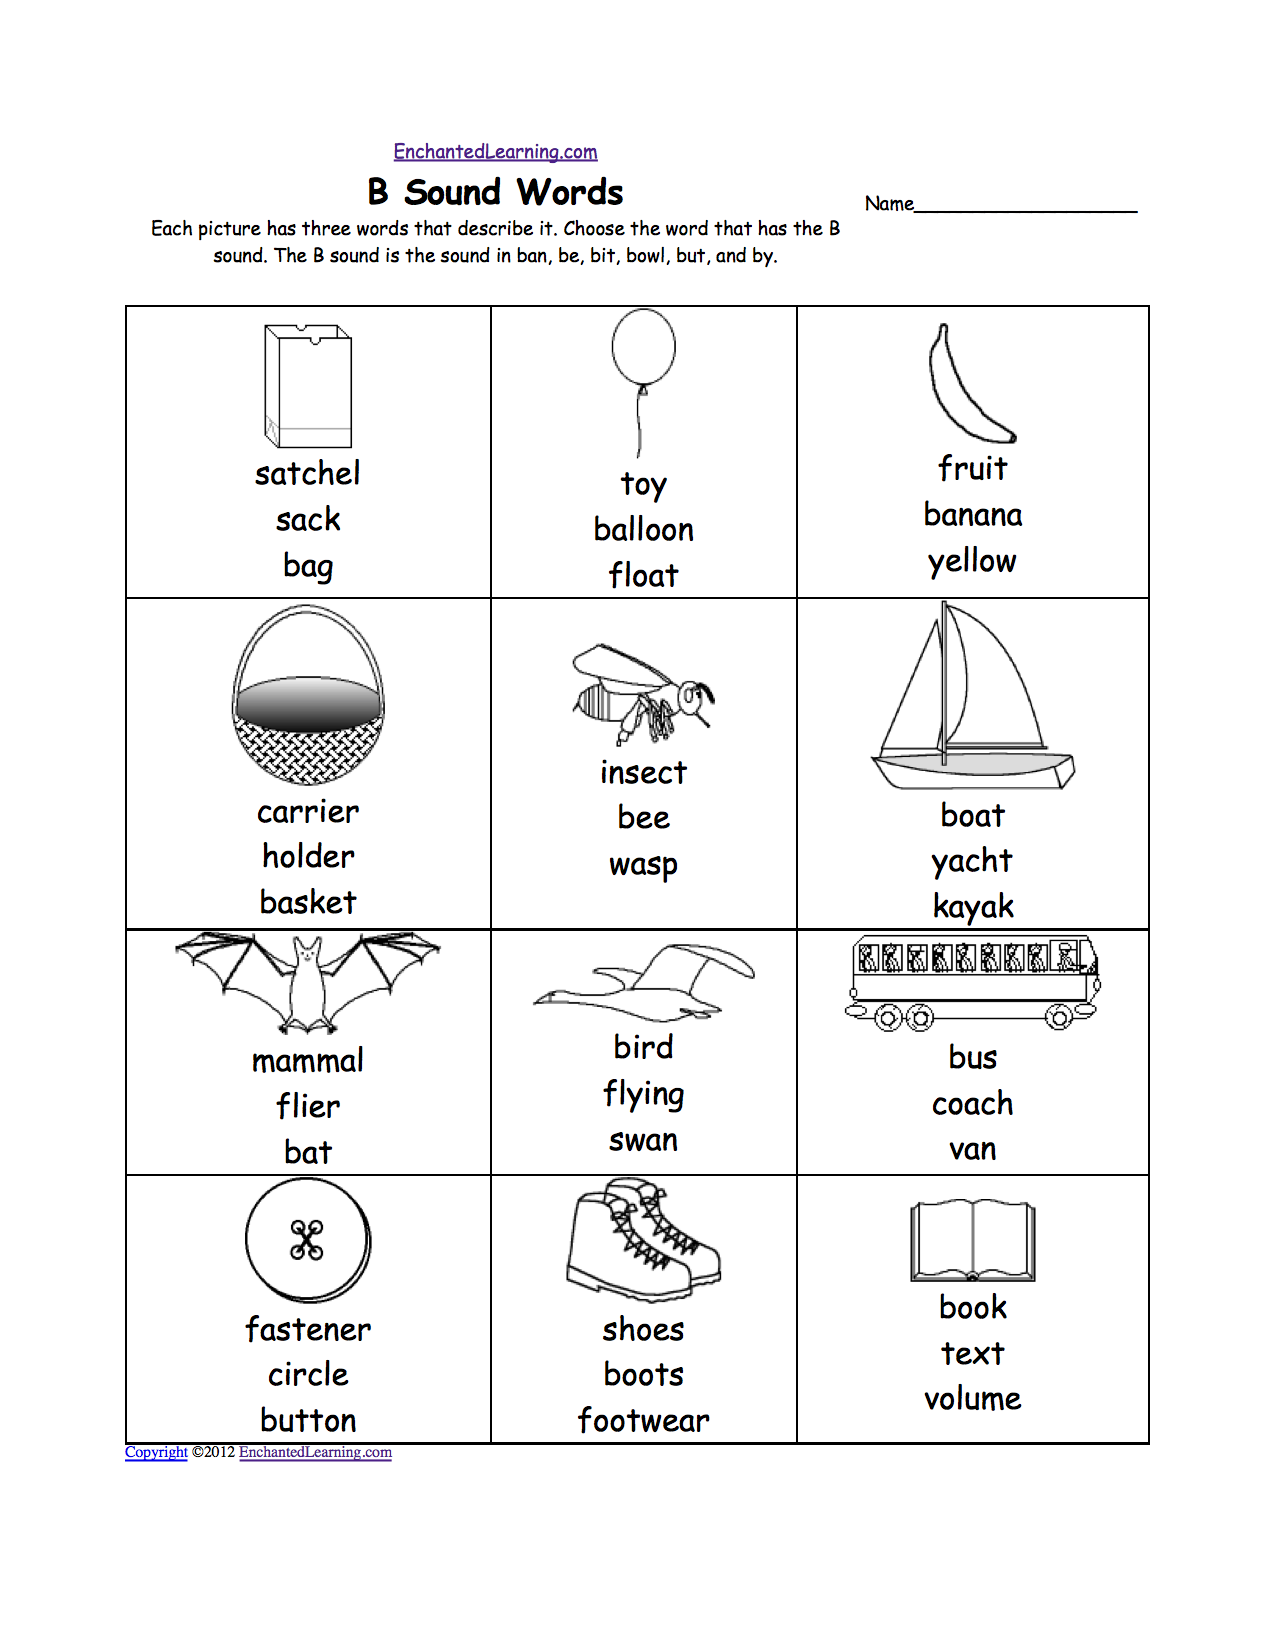 Aldiablosus  Stunning Phonics Worksheets Multiple Choice Worksheets To Print  With Great Quotbquot Sound Phonics Worksheet Multiple Choice Each Picture Has Three Words That Describe It Choose The Word That Has A Quotbquot Sound The Quotbquot Sound Is The Sound  With Delightful Counting Worksheets Also Abc Worksheets In Addition Mutations Worksheet And English Worksheets As Well As Perimeter Worksheets Additionally School Worksheets From Enchantedlearningcom With Aldiablosus  Great Phonics Worksheets Multiple Choice Worksheets To Print  With Delightful Quotbquot Sound Phonics Worksheet Multiple Choice Each Picture Has Three Words That Describe It Choose The Word That Has A Quotbquot Sound The Quotbquot Sound Is The Sound  And Stunning Counting Worksheets Also Abc Worksheets In Addition Mutations Worksheet From Enchantedlearningcom